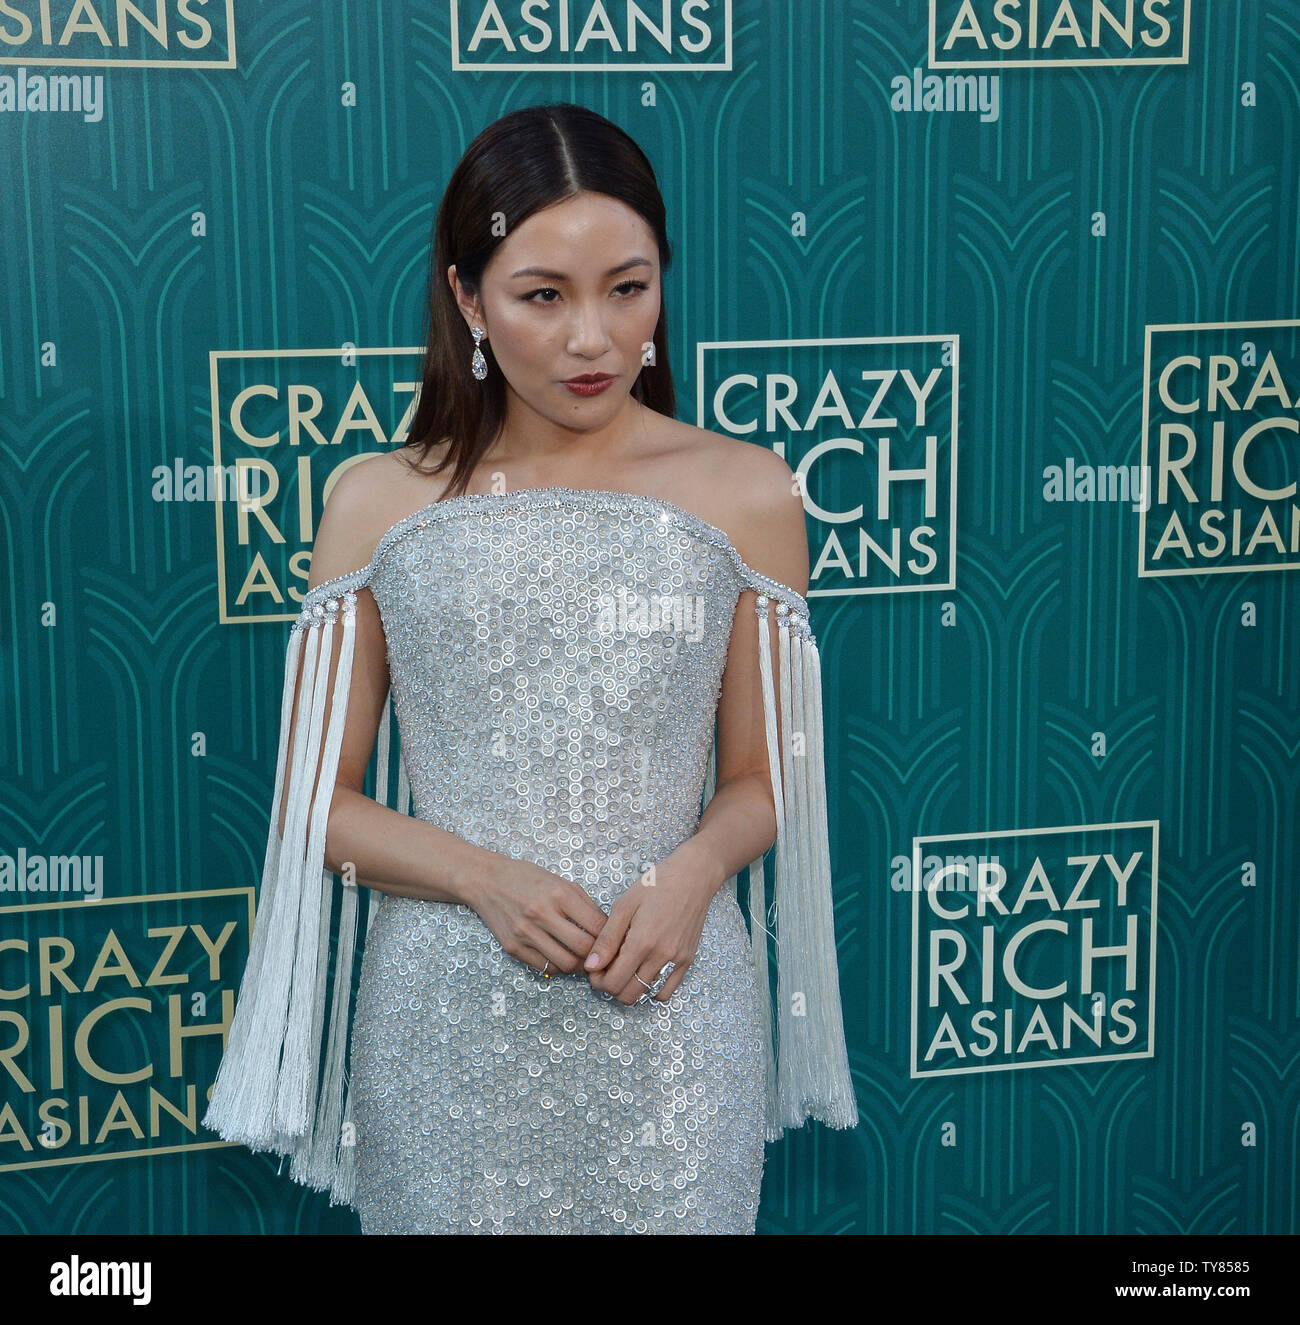 Cast member Constance Wu attends the premiere of the motion picture comedy 'Crazy Rich Asians' at the TCL Chinese Theatre in the Hollywood section of Los Angeles on July 7, 2018. The story follows Rachel Chu (Wu), an American-born Chinese economics professor, who travels to her boyfriend Nick's (Henry Golding) hometown of Singapore for his best friend's wedding. Before long, his secret is out: Nick is from a family that is impossibly wealthy, he's perhaps the most eligible bachelor in Asia, and every single woman in his ultra-rarefied social class is incredibly jealous of Rachel and wants to b - Stock Image